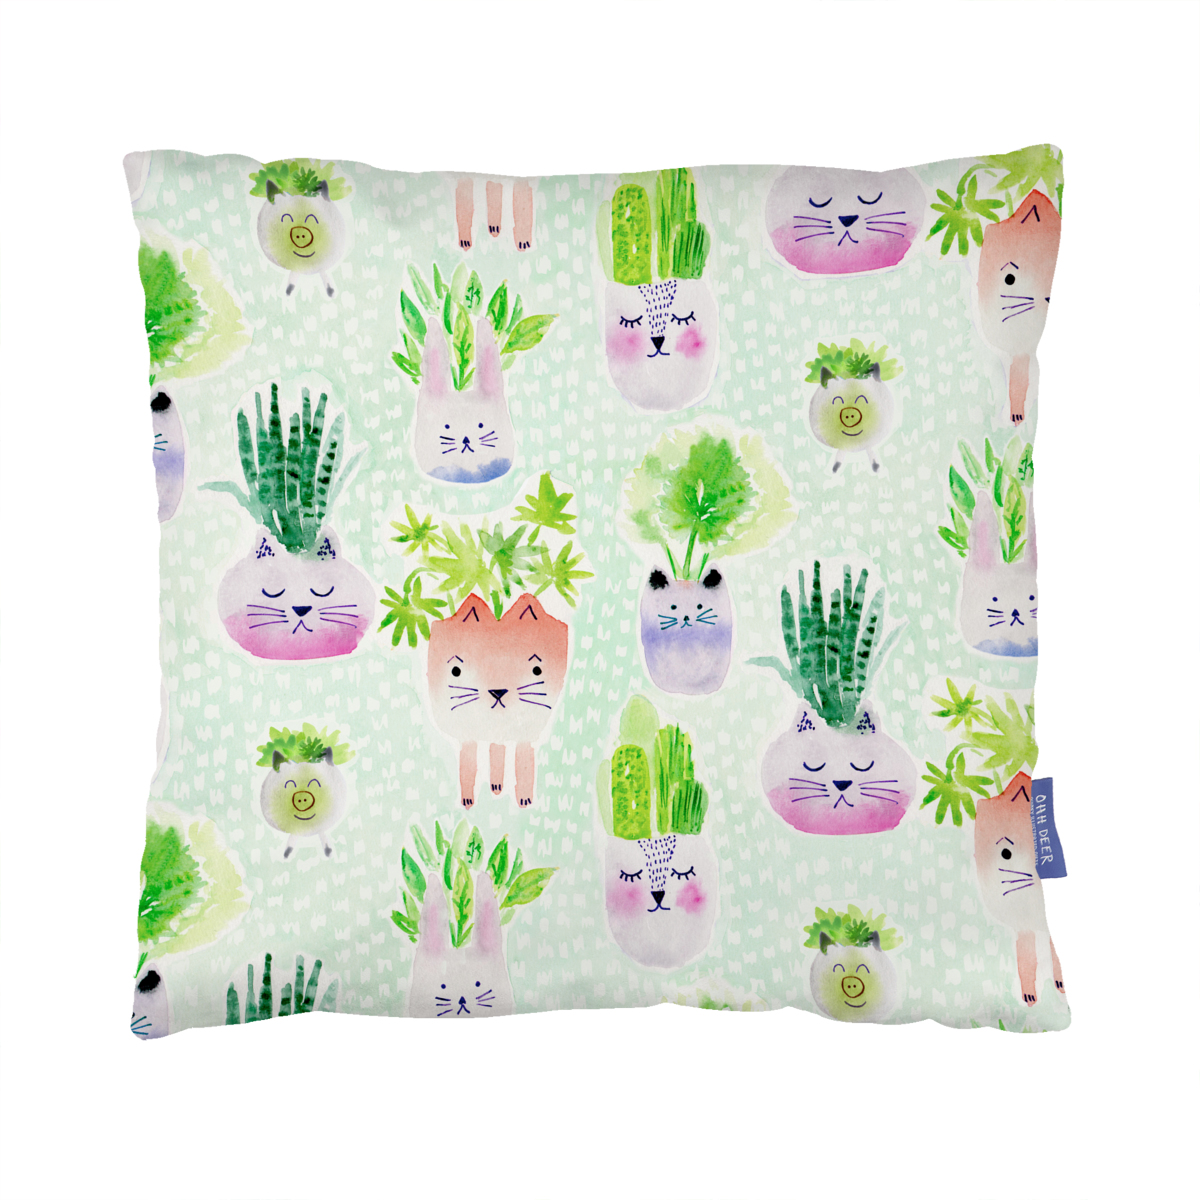 Planter Pals cushion